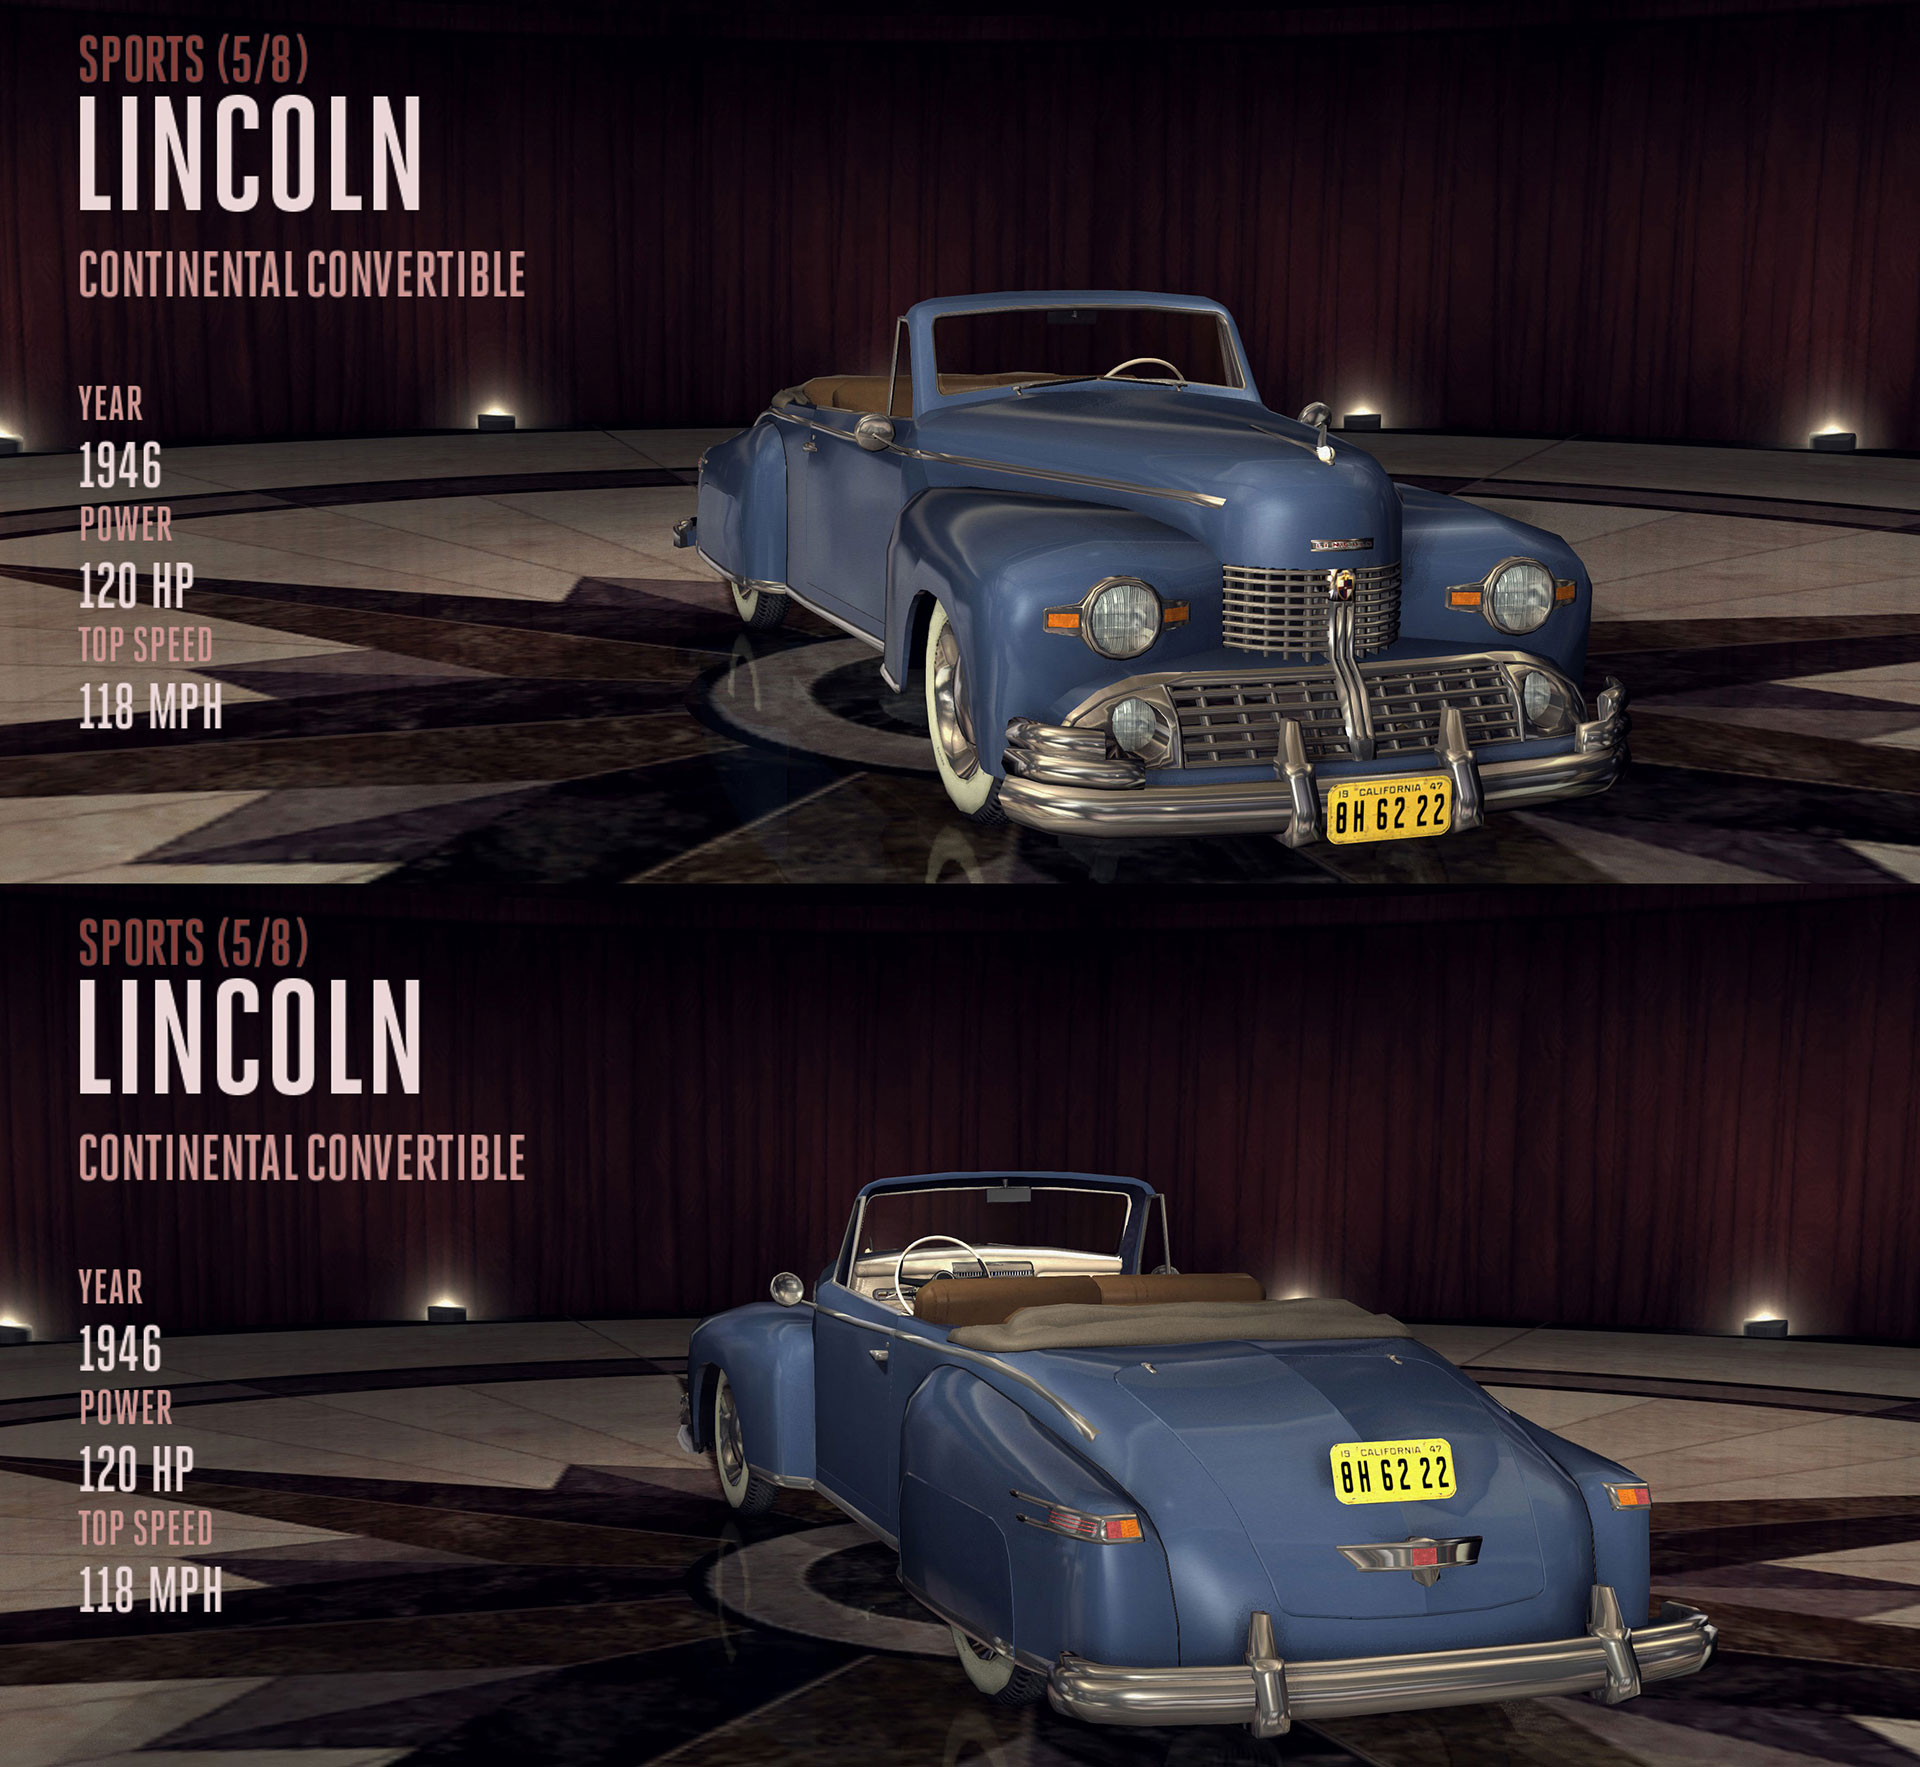 Archivo:1946-lincoln-continental-convertible.jpg